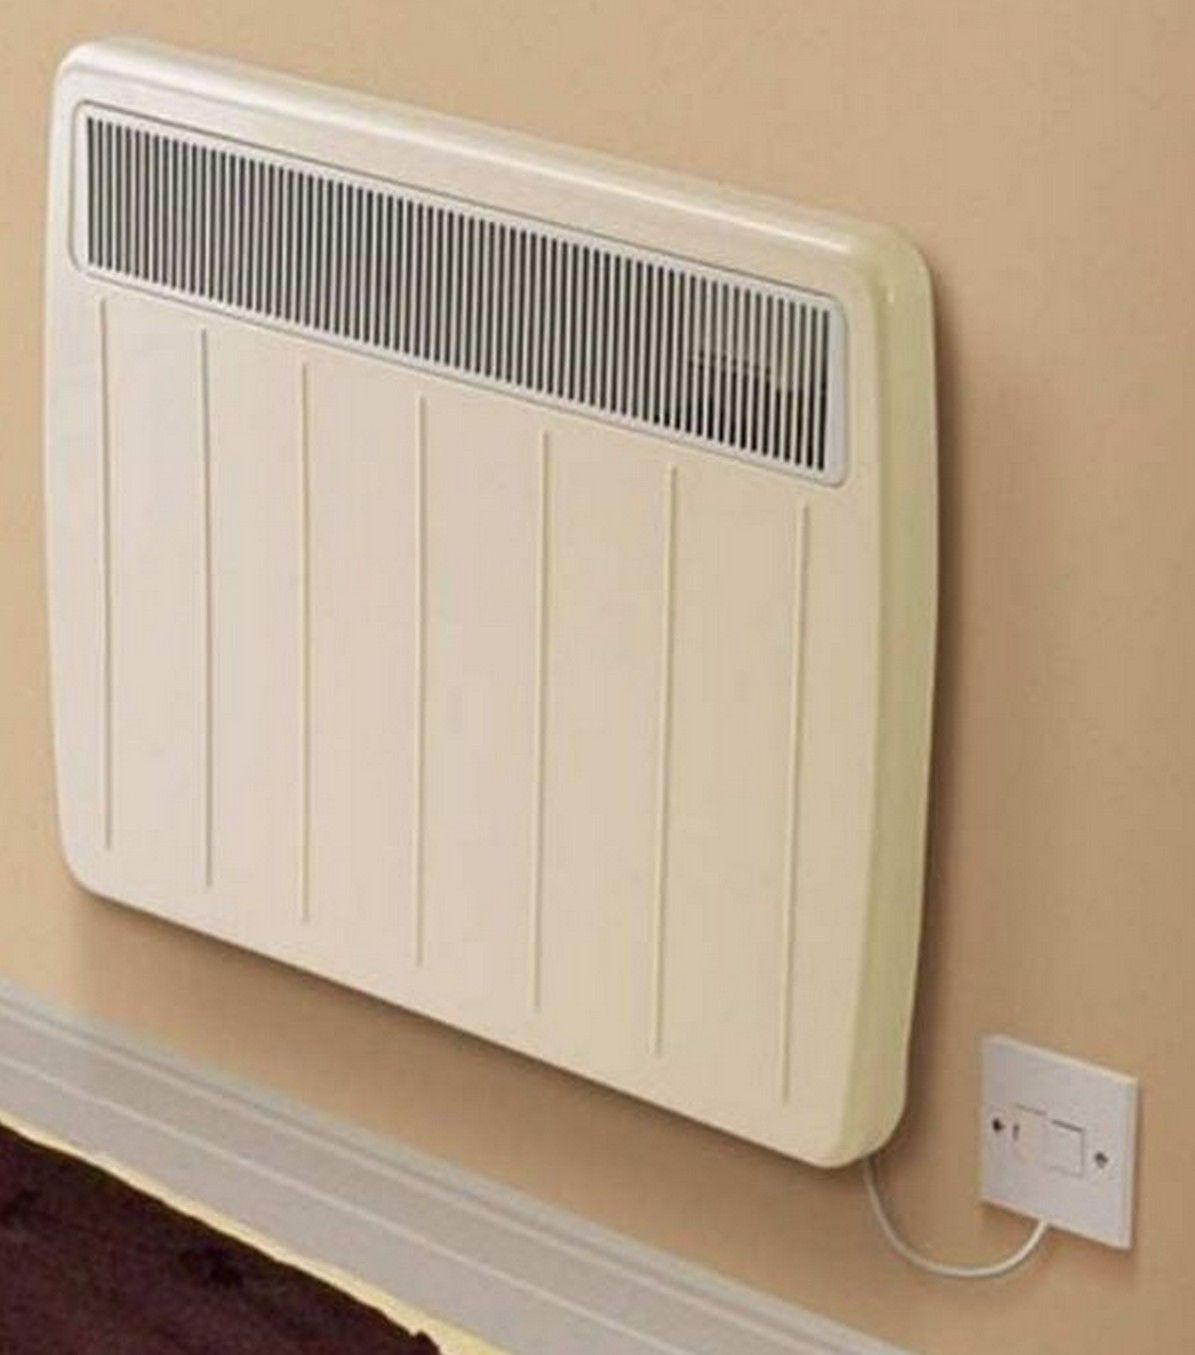 Dimplex Compact Wall Mounted Heaters Thermostatic Control Dimplex Plx Panel Heaters Are Attractive Wall Mounted Panel Heaters Ideal For Spaces Which Require